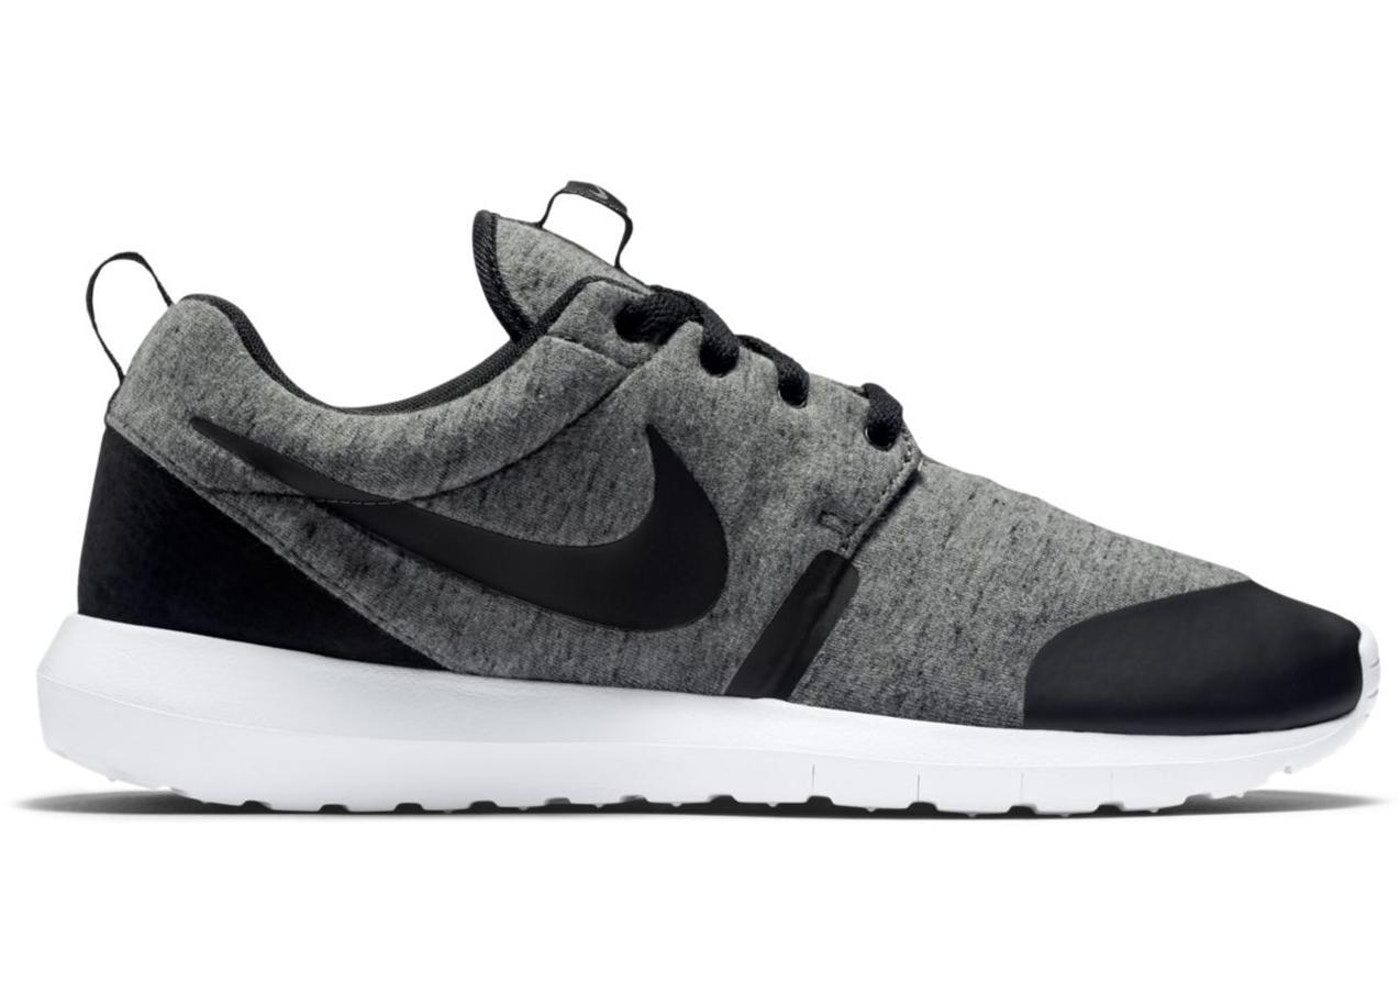 quality design b4993 82e7b Nike Roshe Run Tech Fleece Cool Grey